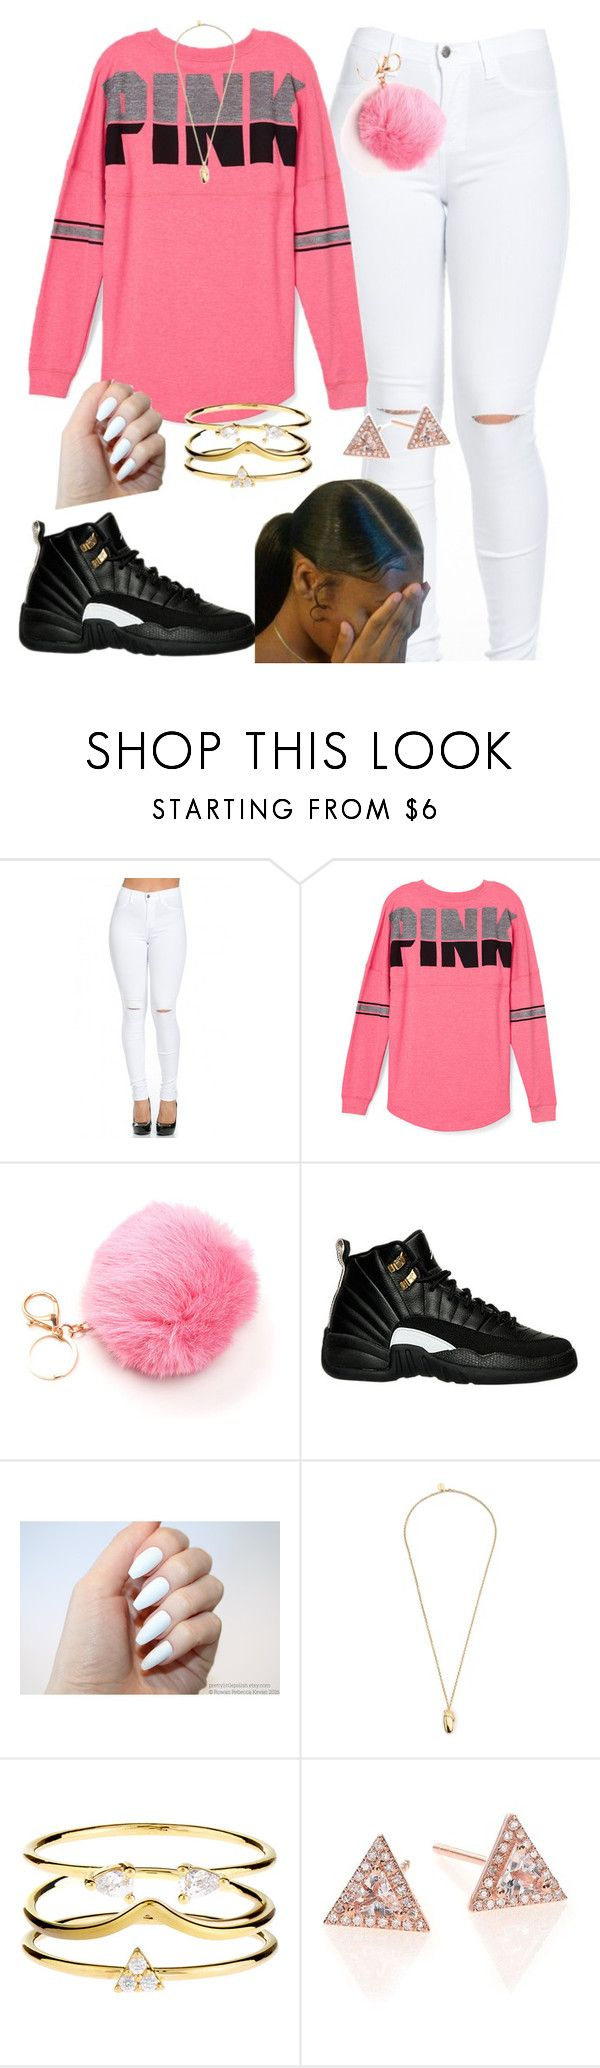 """""""Untitled #301"""" by kitty900 ❤ liked on Polyvore featuring Victoria's Secret PINK, Pembe Club, Accessorize and EF Collection"""